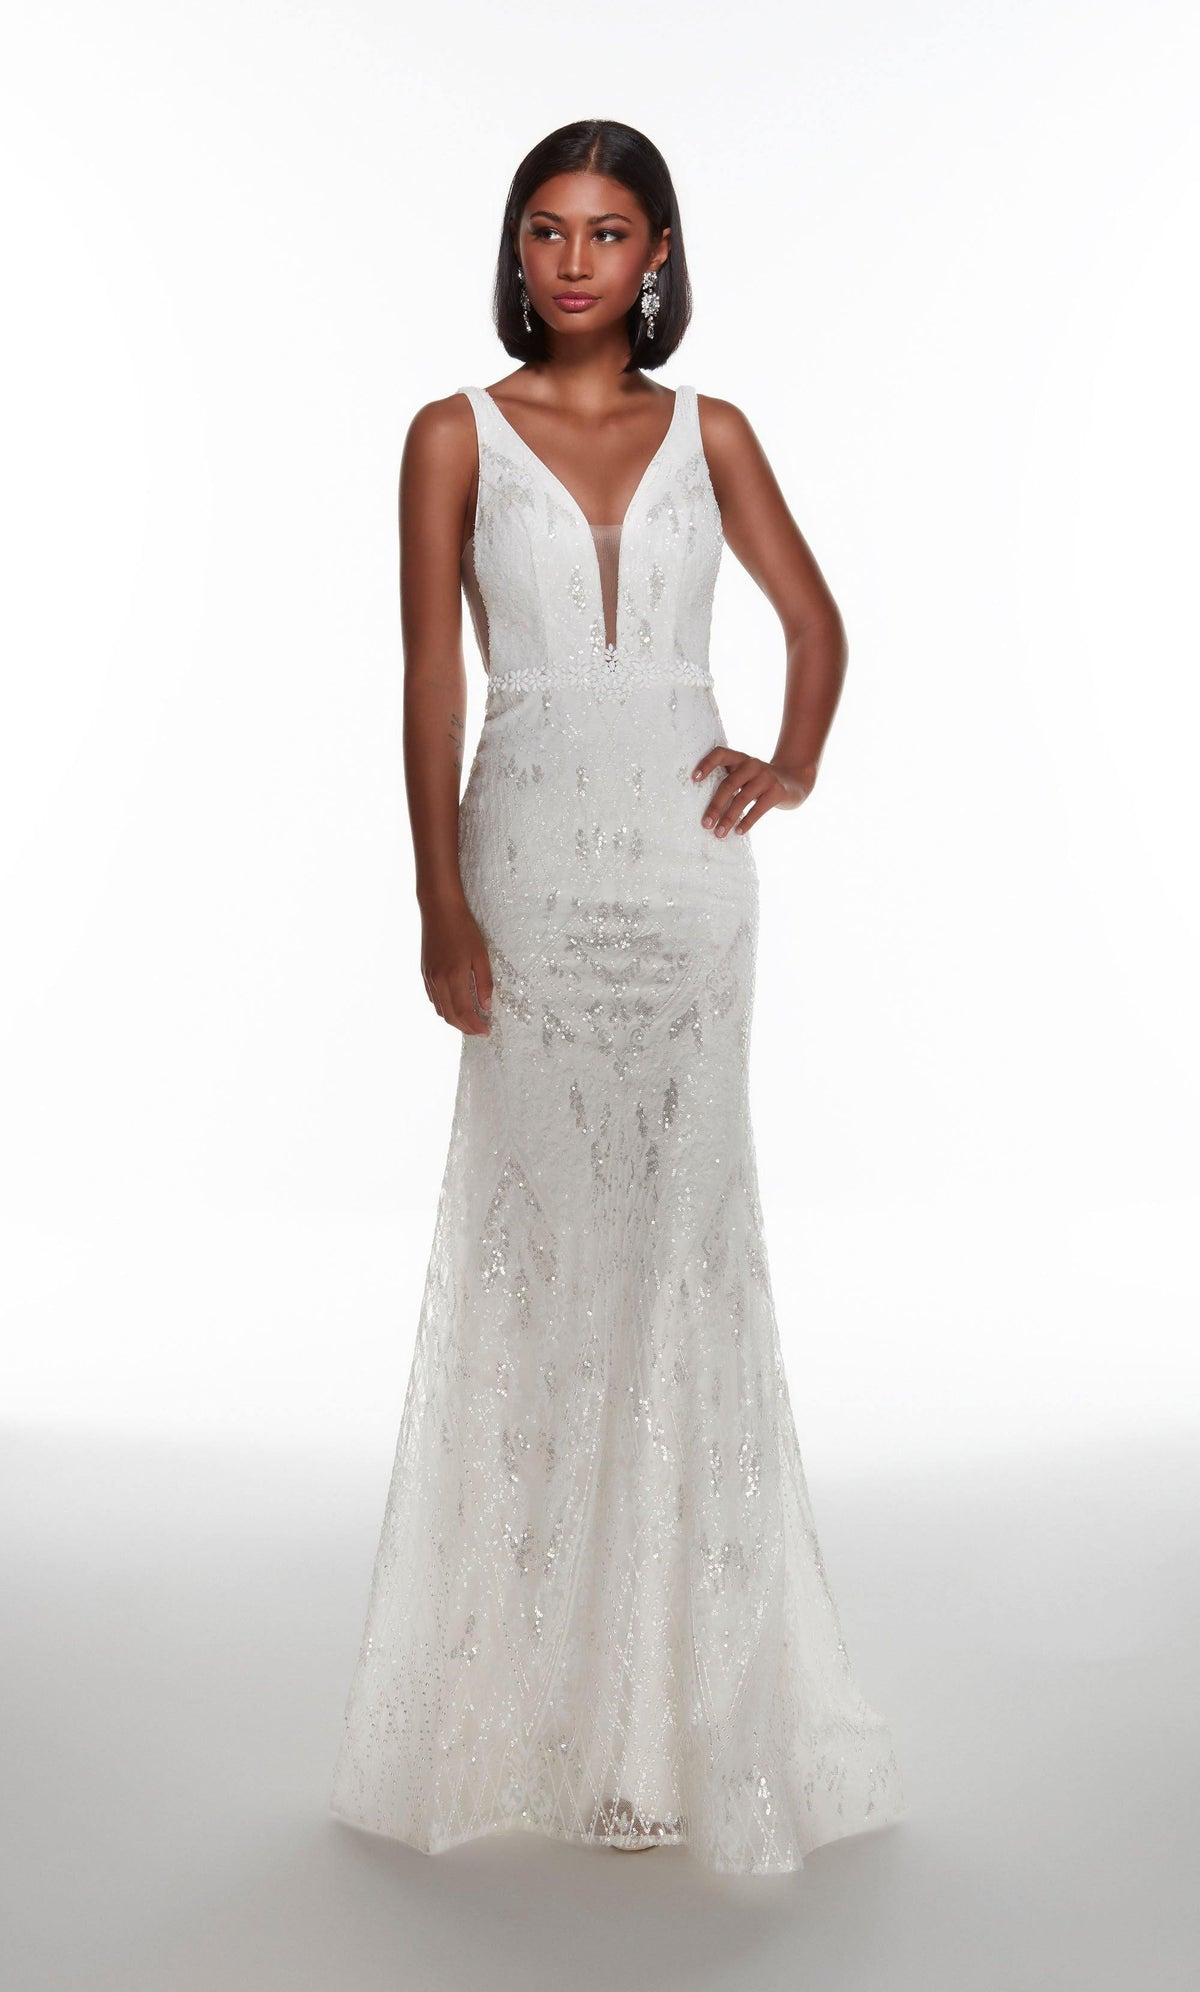 Fully sequin embellished Diamond White colored wedding gown with a plunging neckline and a jewel accents at the natural waist